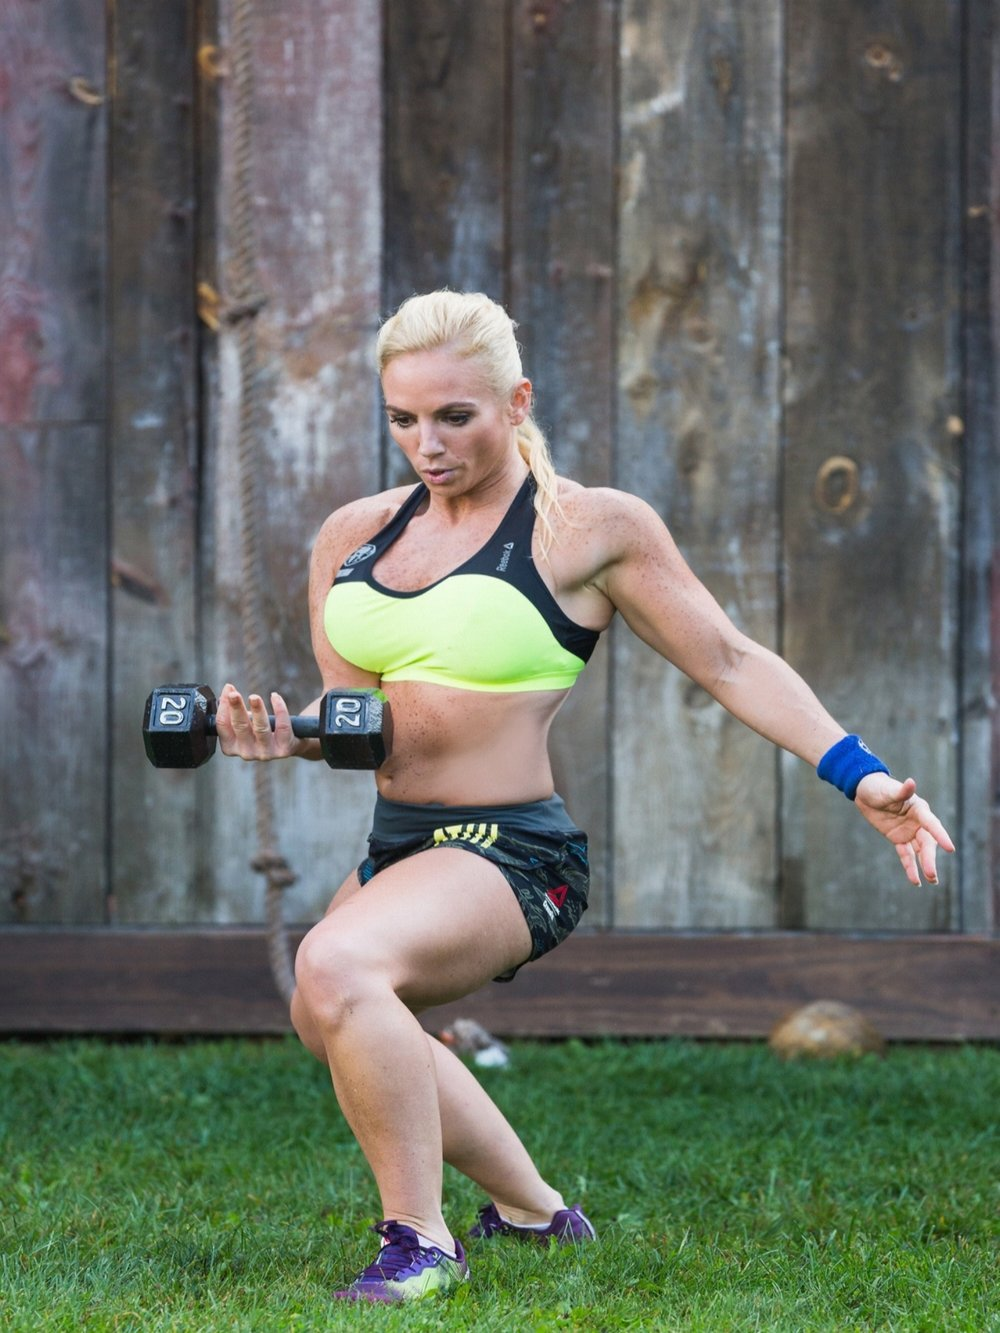 Spartan SGX Coach and Daily Burn Spartan Cast Member Madeline Dolente